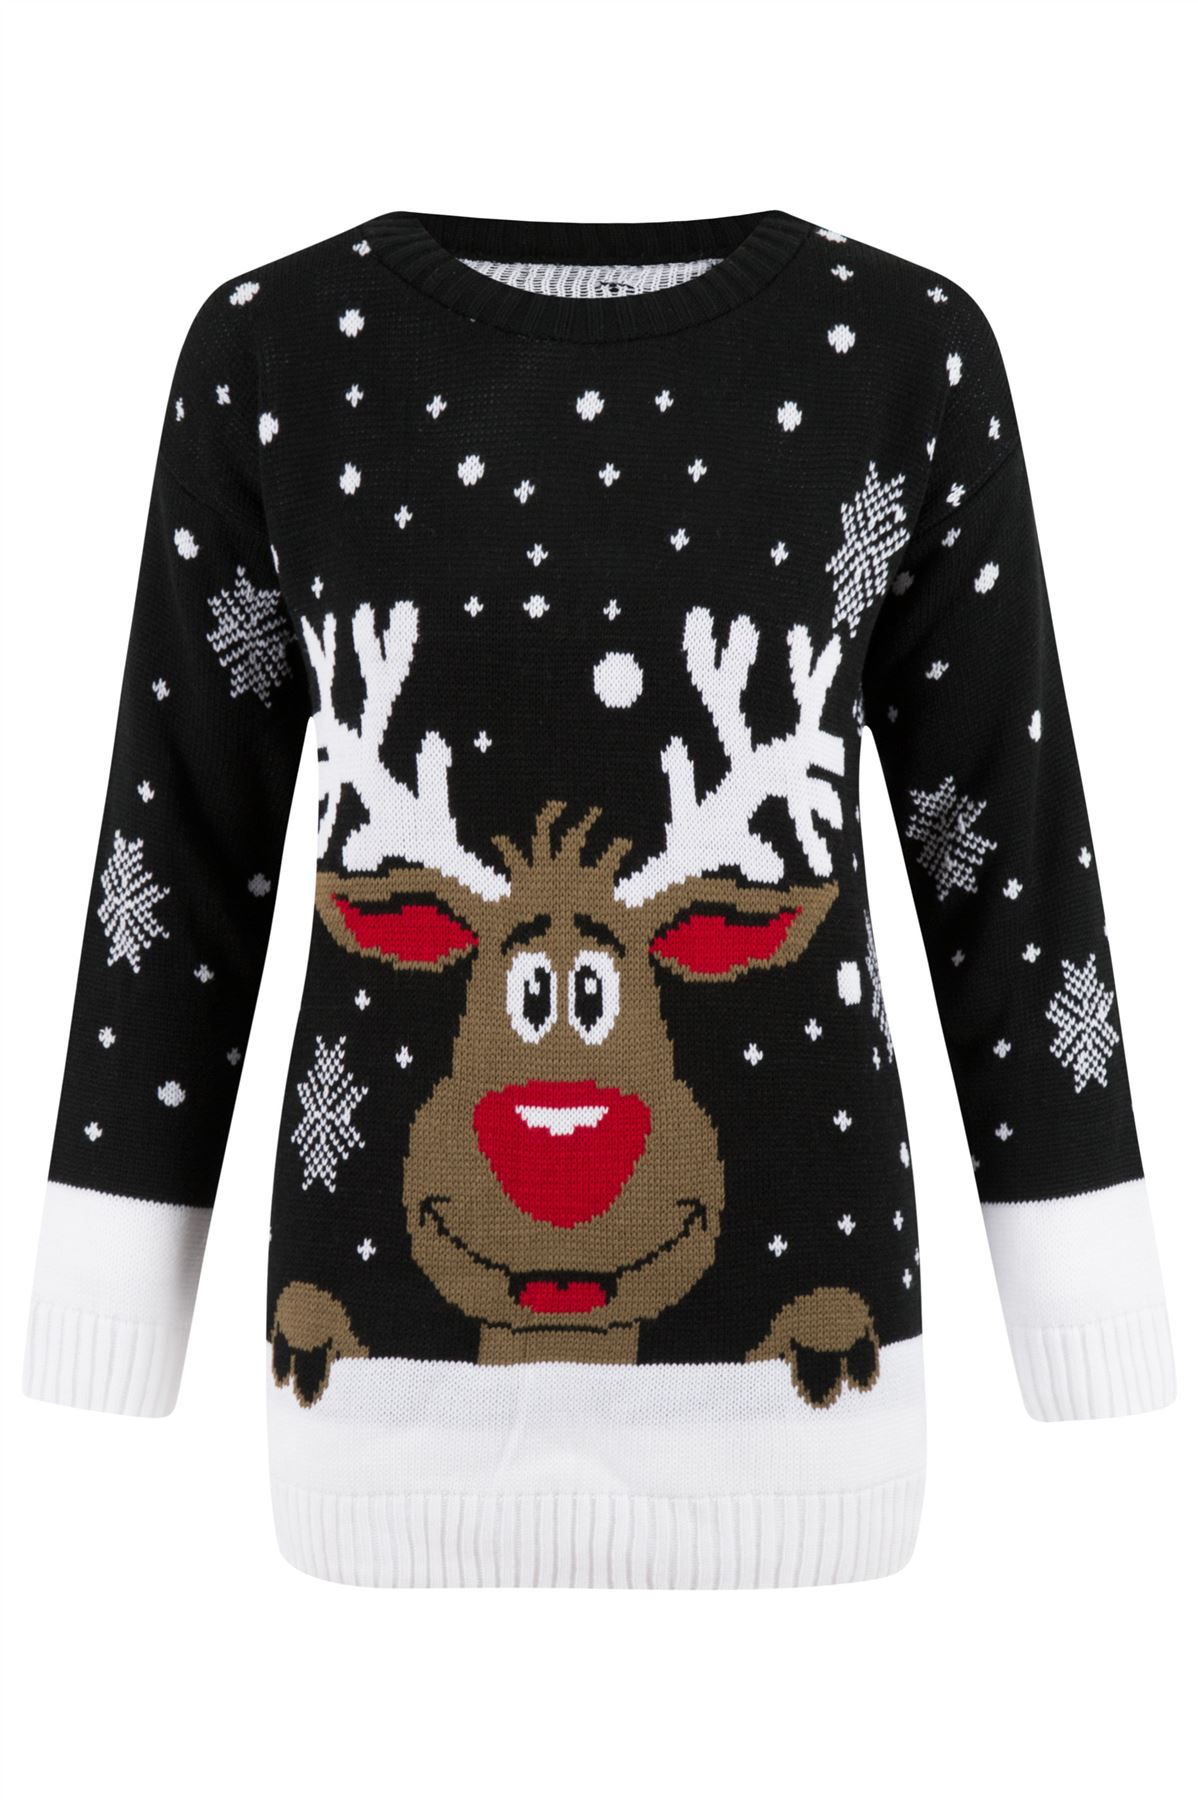 al9mg7p1yos.gq Try Prime Clothing YiLianDa Women Christmas Printed Cardigan Long Sleeve Warm Knitted Sweater Casual Winter Overcoat. £ For G and PL Womens Autumn Long Knitted Cardigan Sweater Coat with Pockets. £ Prime. 4 out of 5 stars 4.